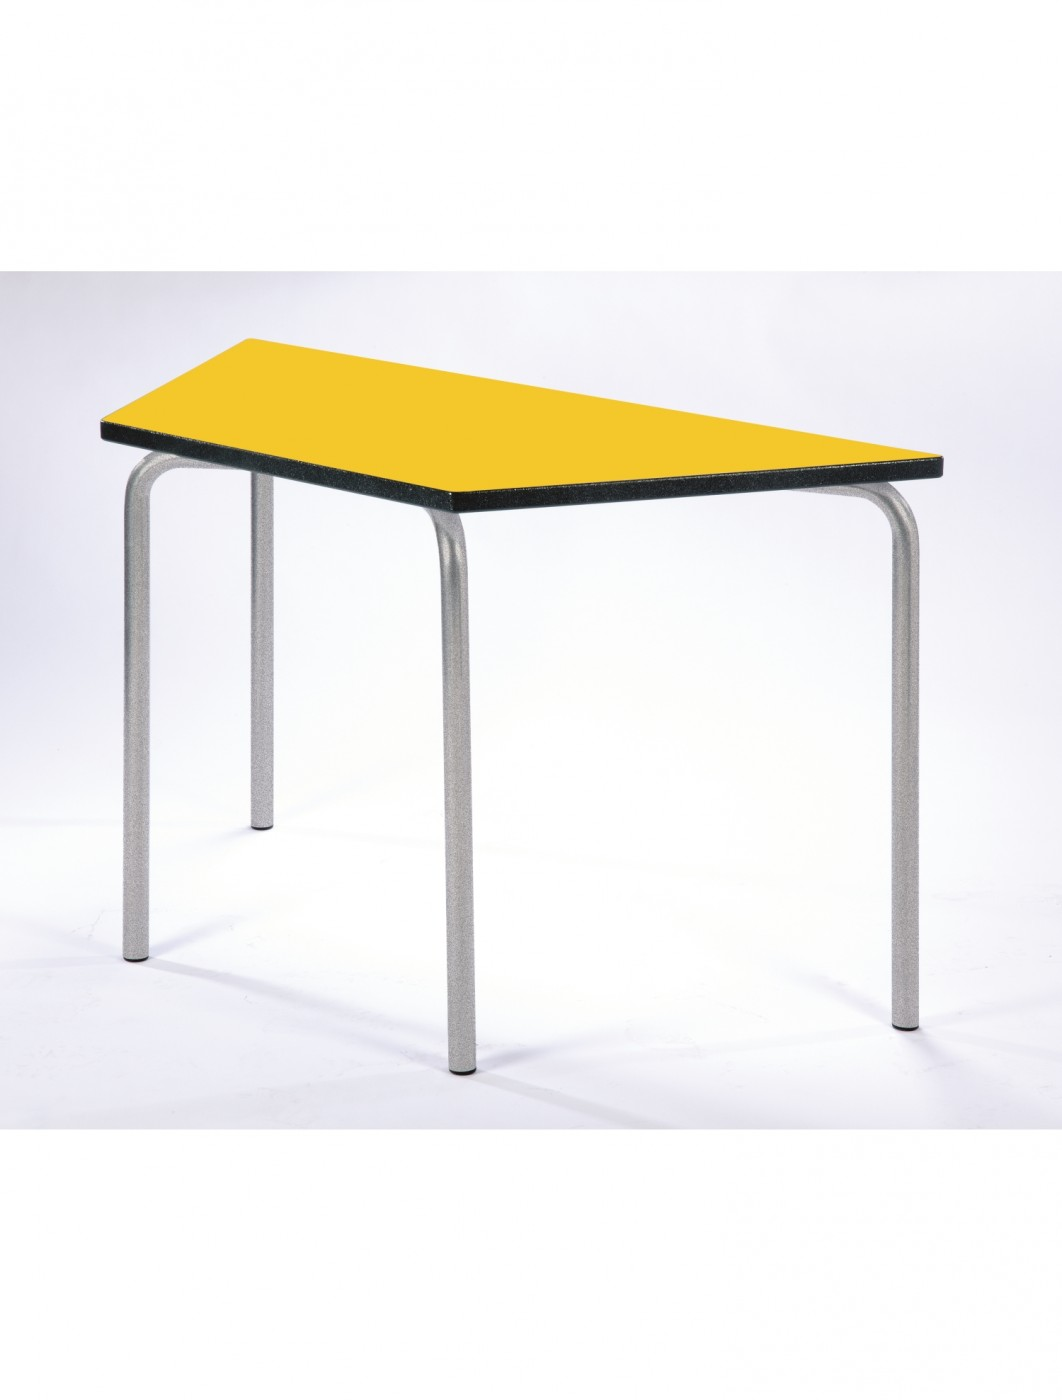 Classroom tables equpr 11le ps trapezoidal equation tables for Trapazoid table